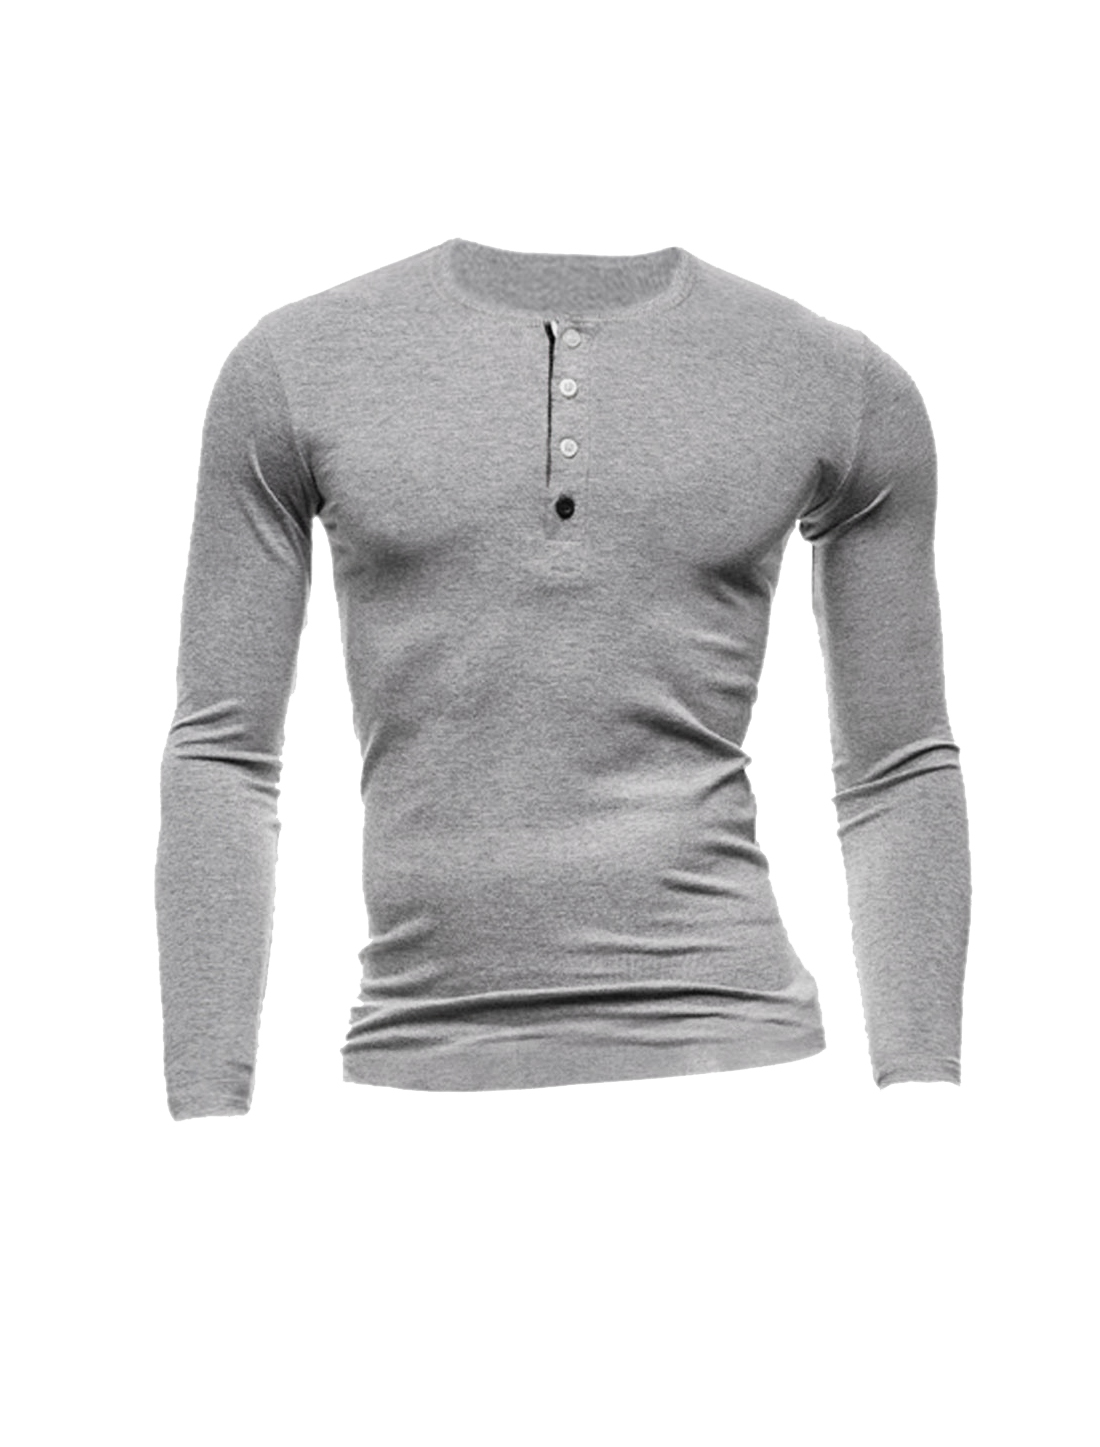 Men Long Sleeves Round Neck Four-Button Placket Henley Shirt Light Gray M